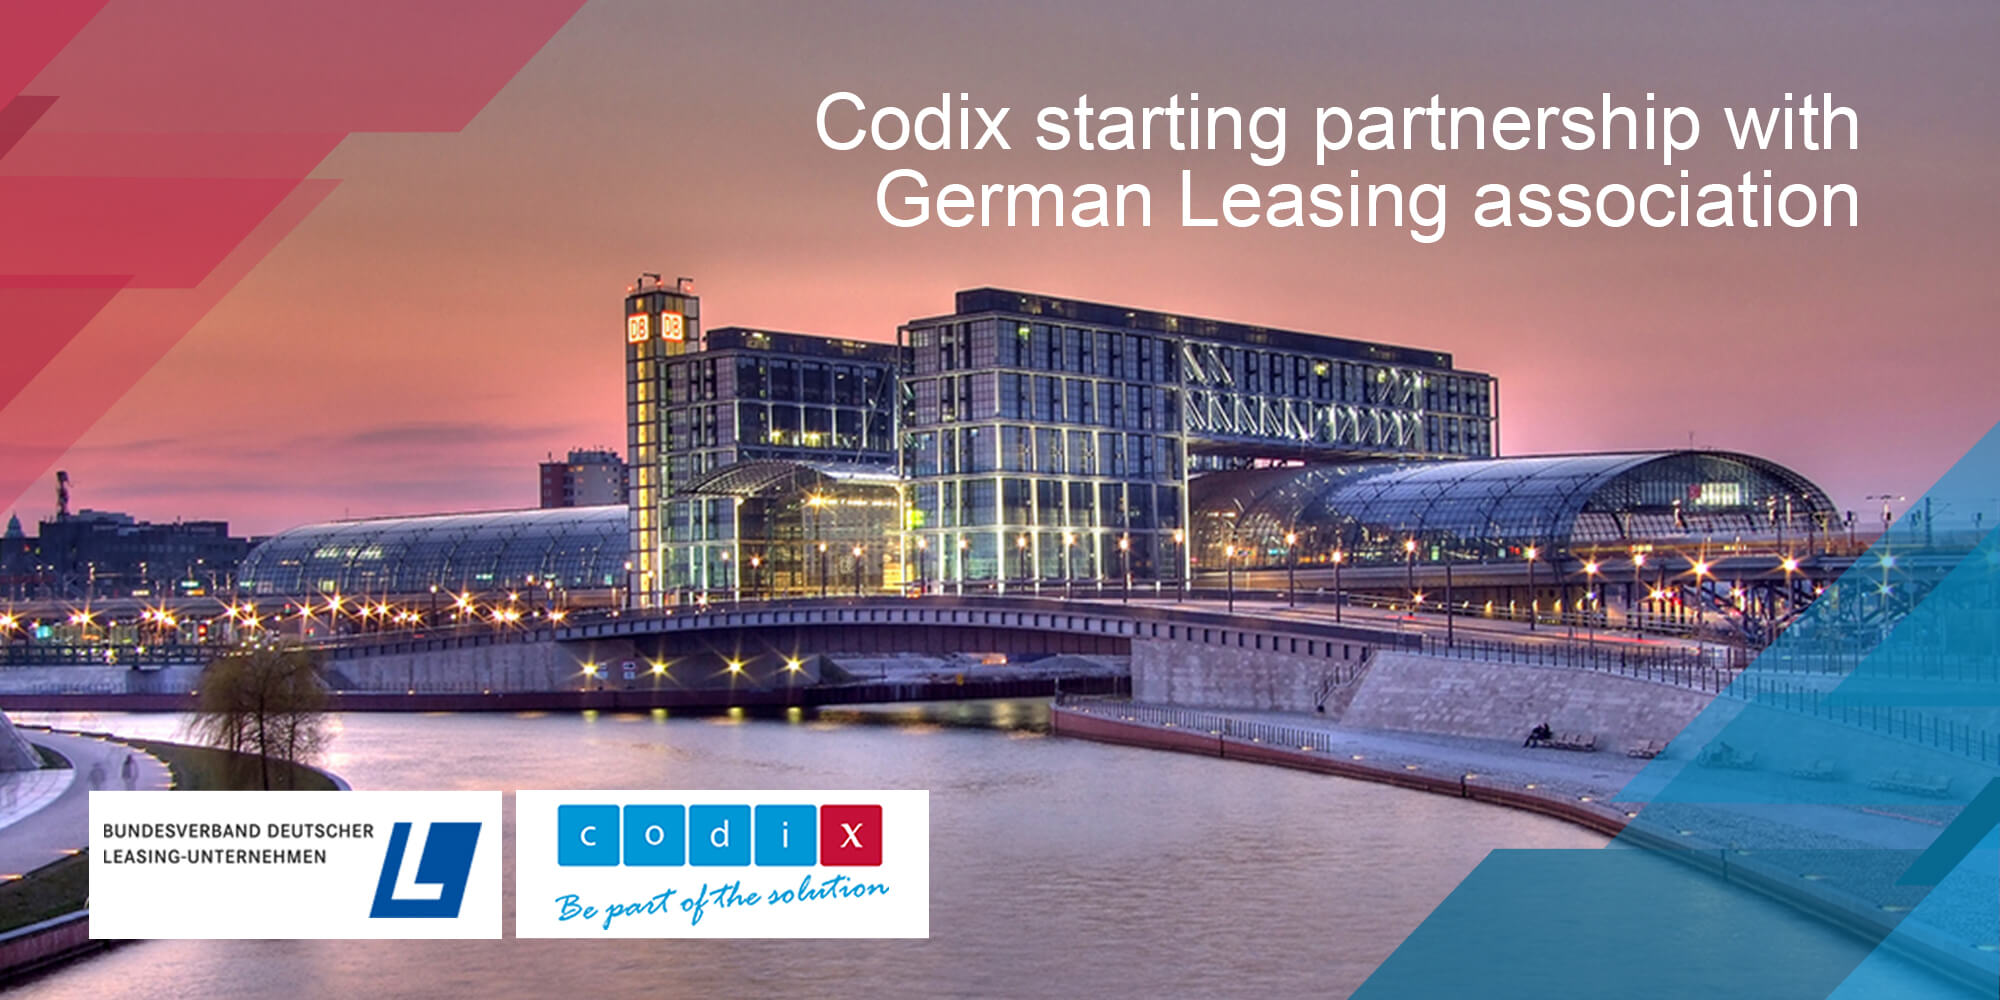 Codix and German leasing association